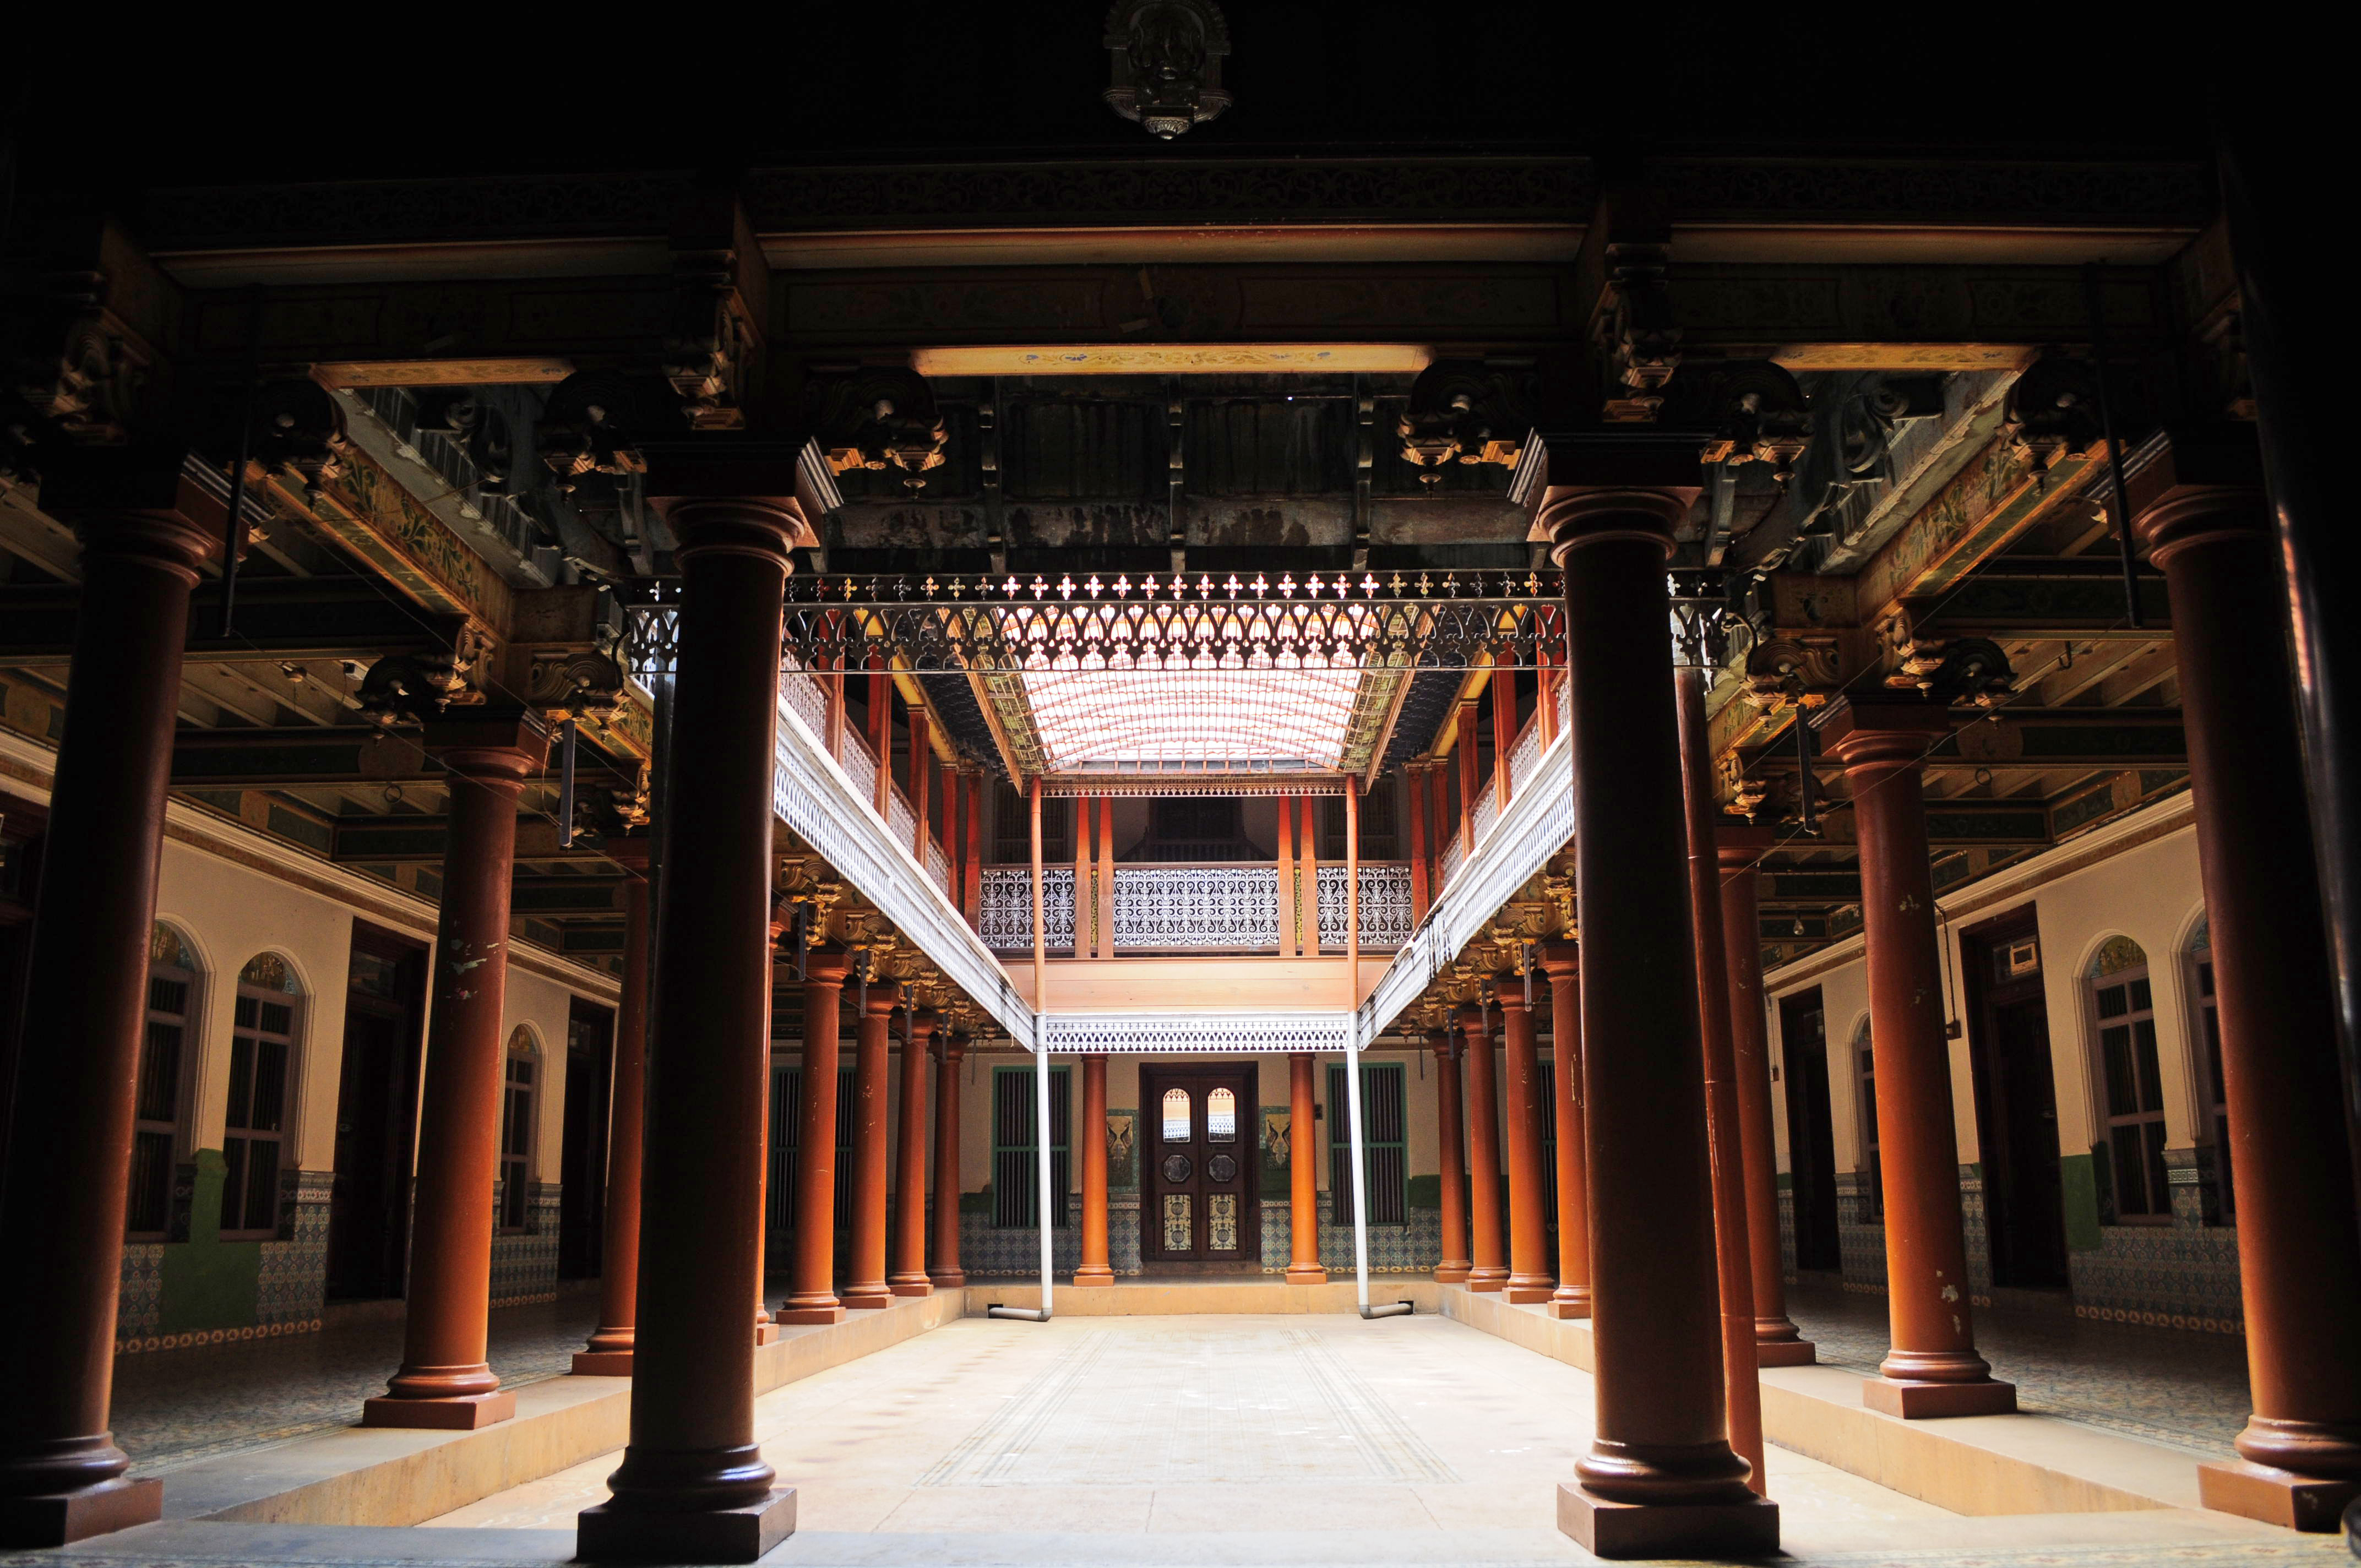 10 things to see and do in chettinad for Chettinad house architecture design